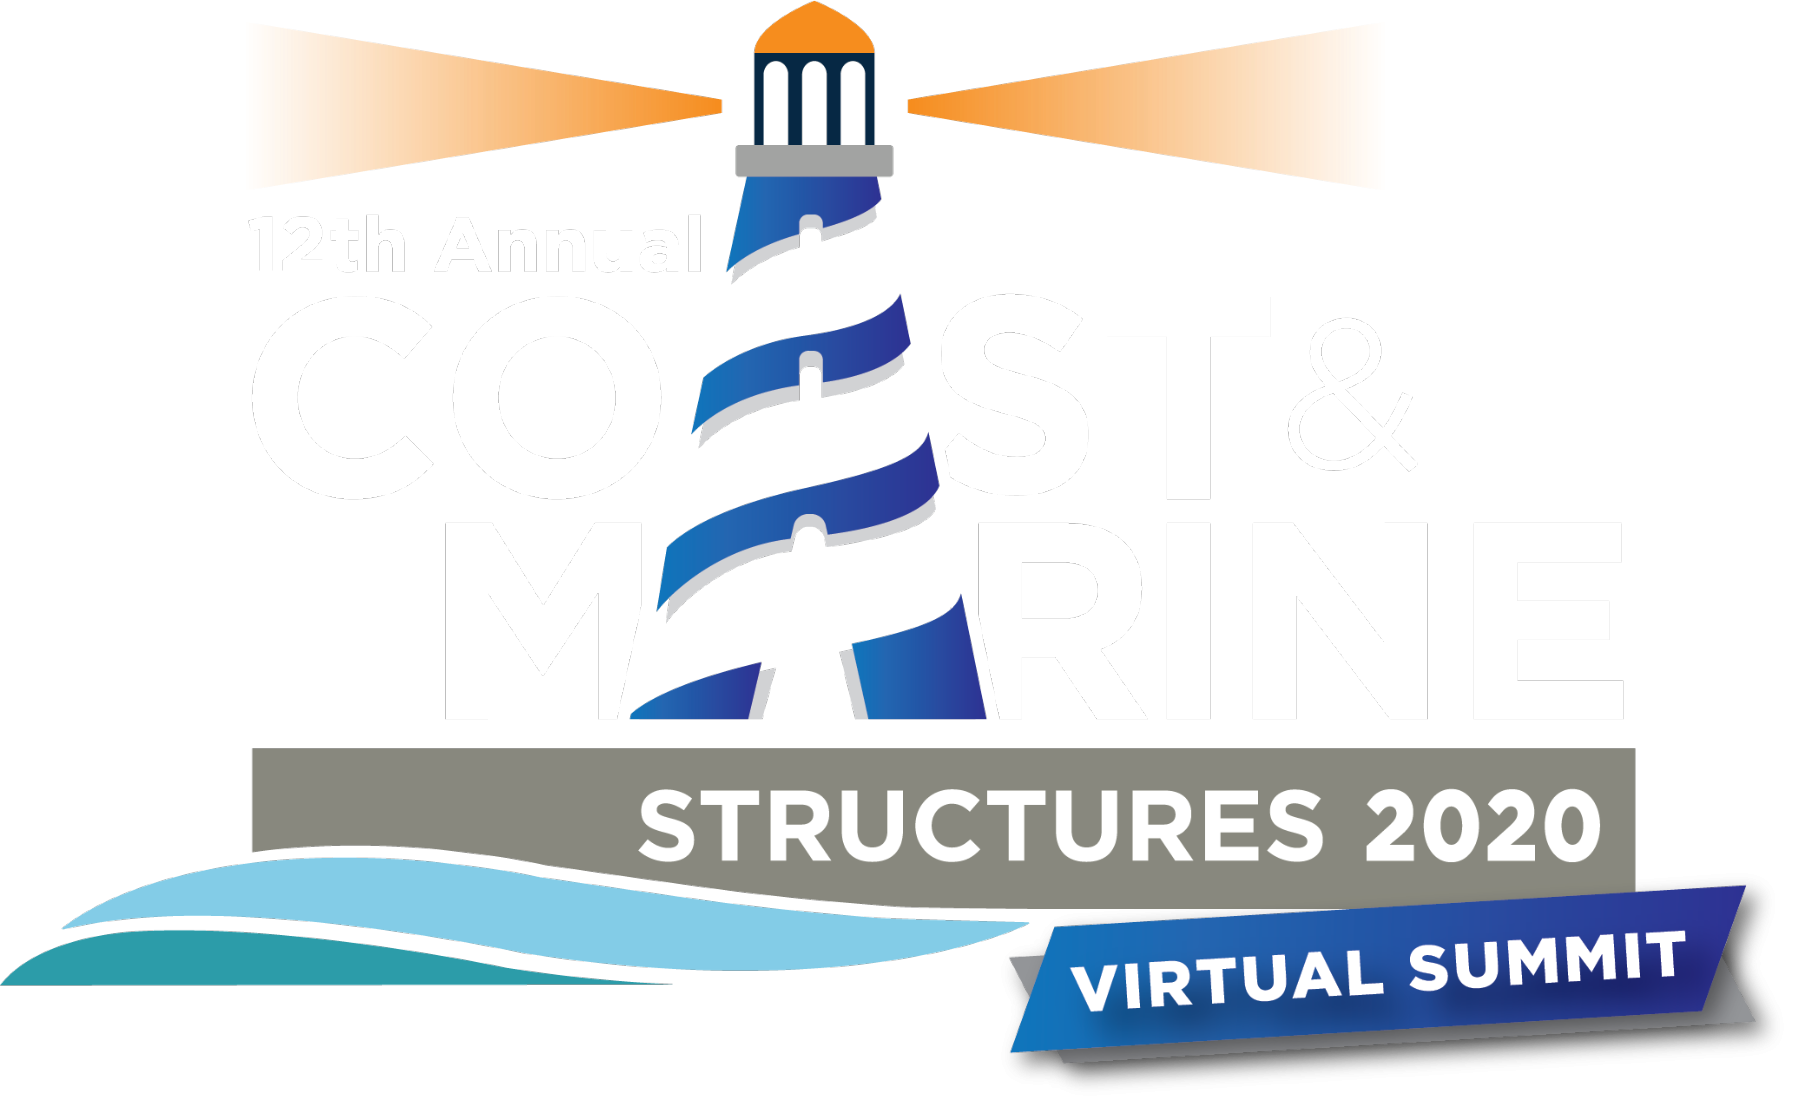 12th Annual Coast & Marine Online Summit 2020